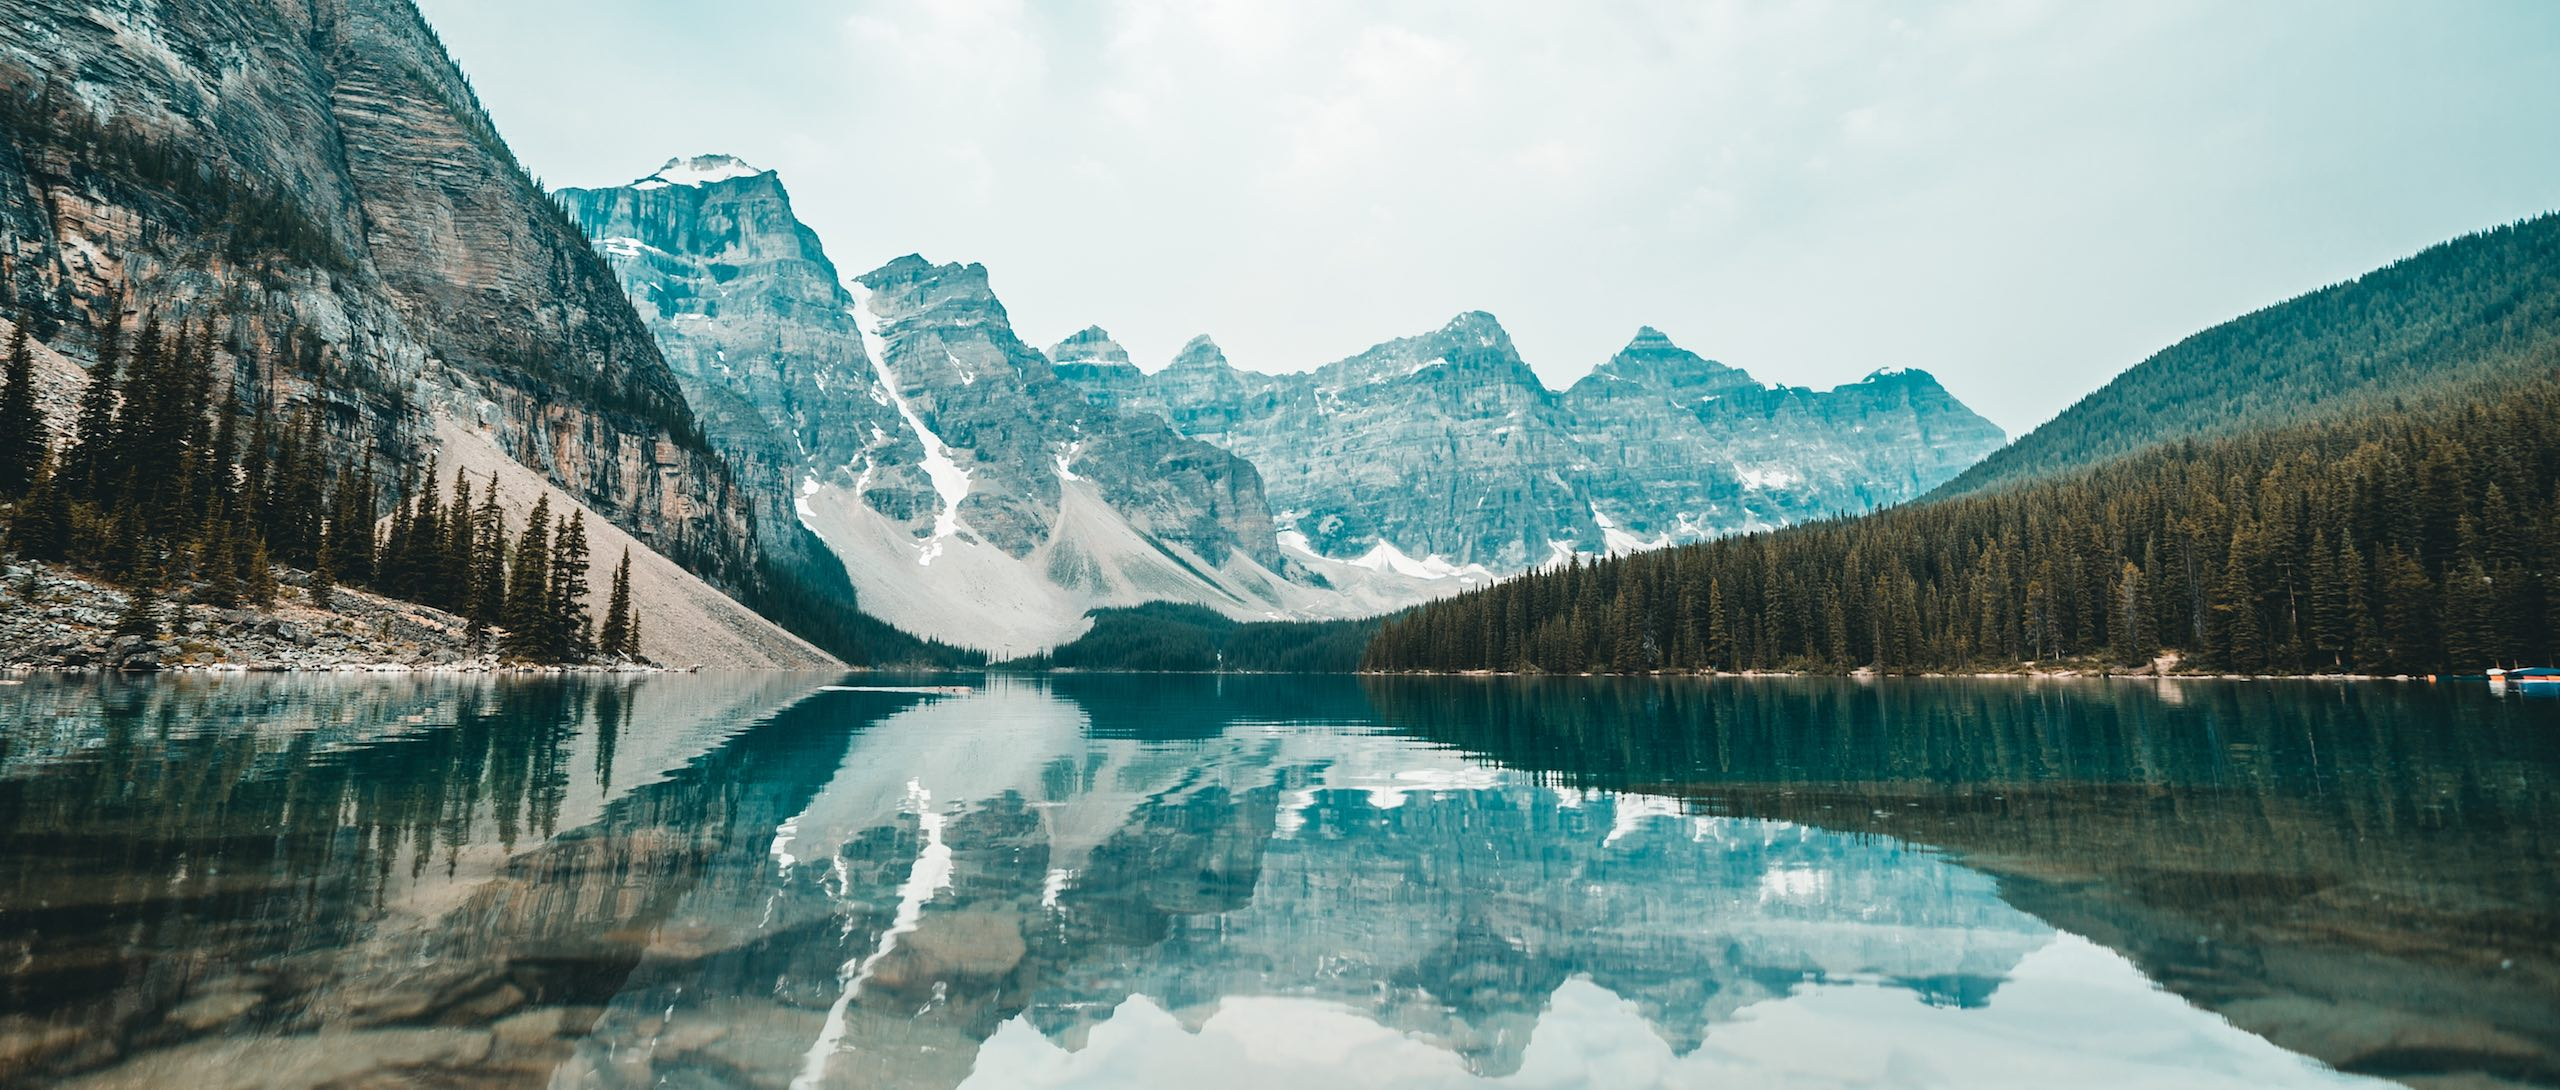 Landscape photo of a mountain lake in Canada with mountains in the background being reflected on the lake surface